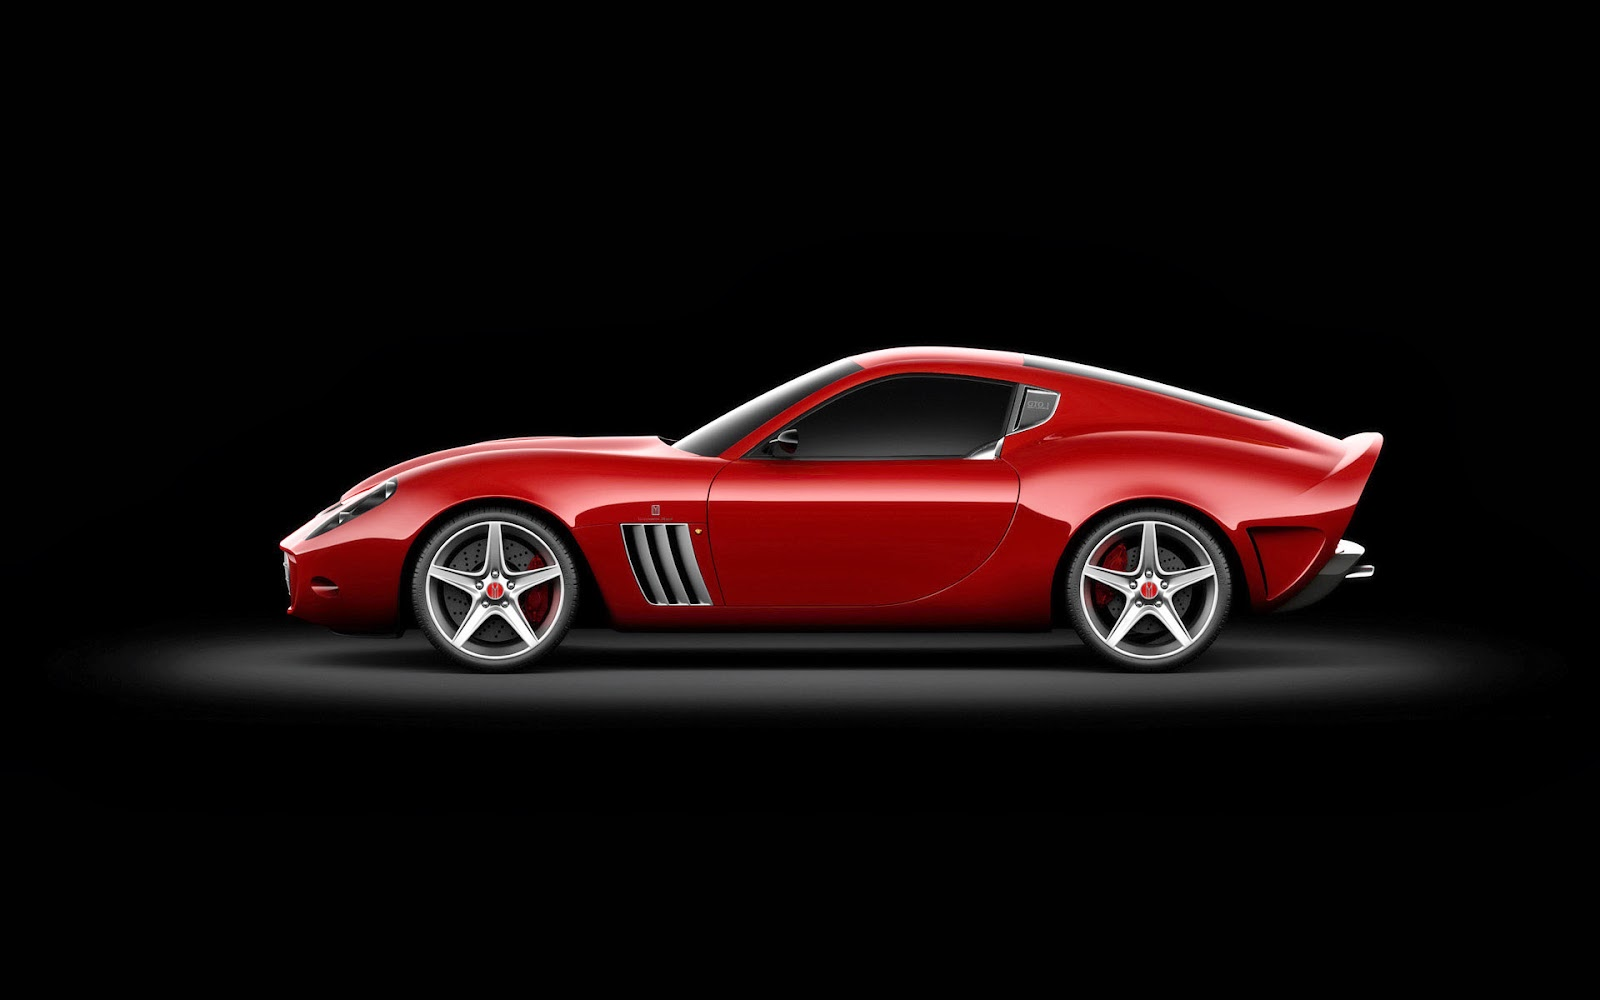 Ferrari Car HD Pictures Free Download